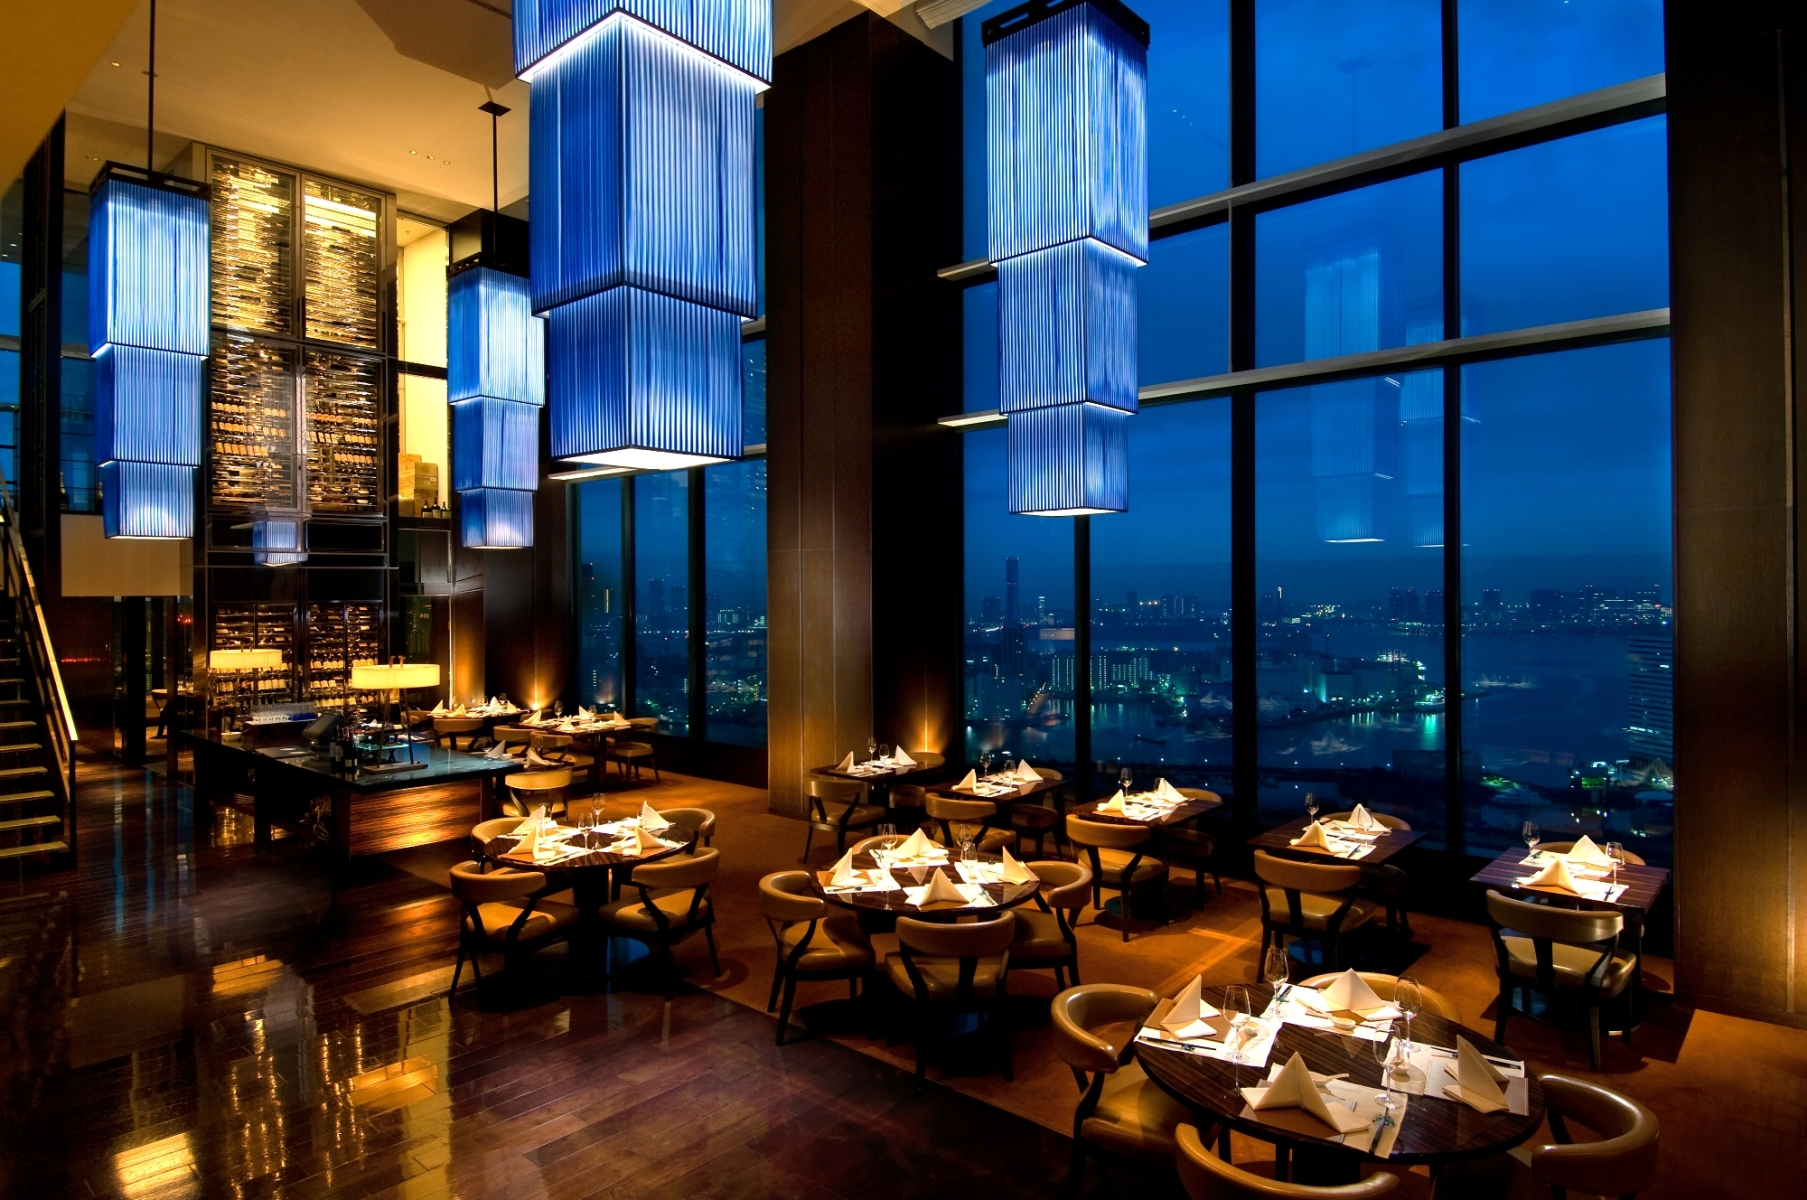 Grand Hyatt Party Plans Southern Tower Winter Stays